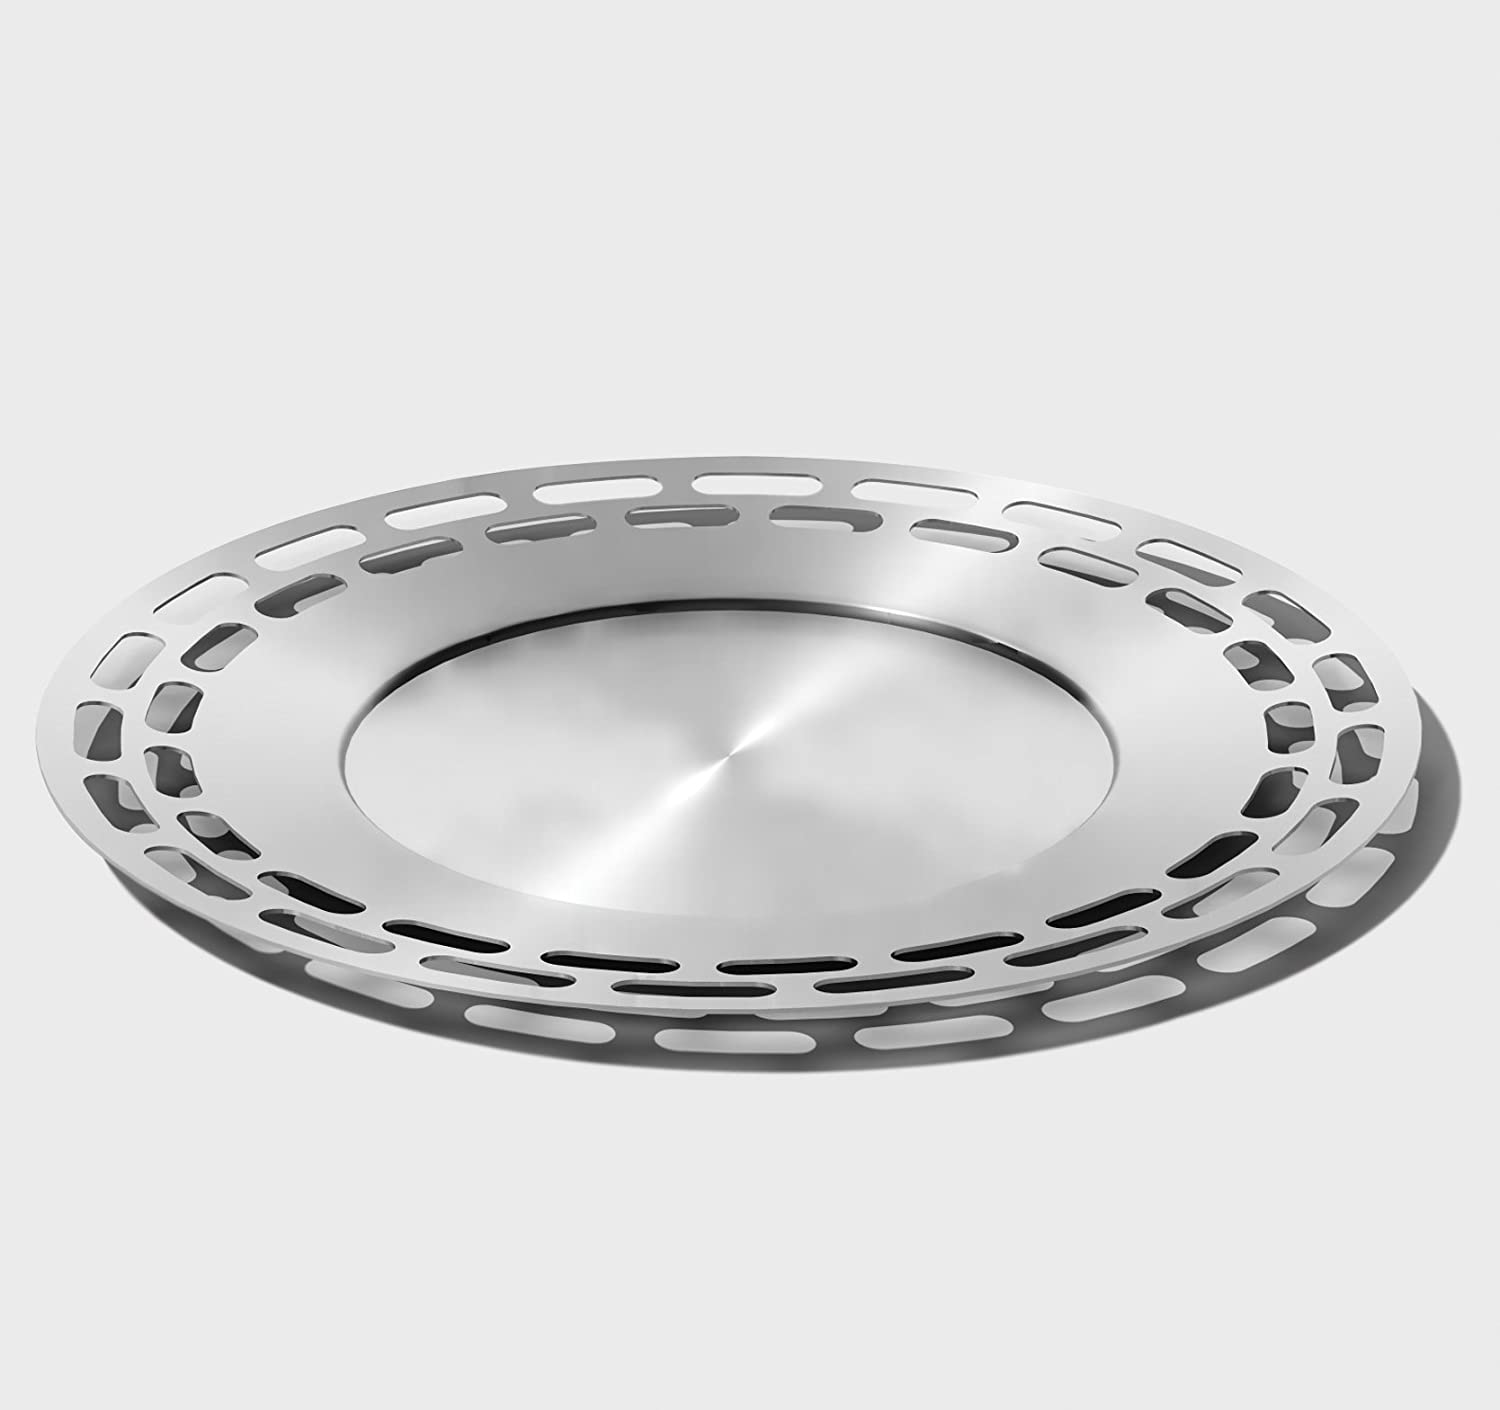 Mod18 Steelworks SB-47 Modern Round Tray, Brushed Stainless, 15